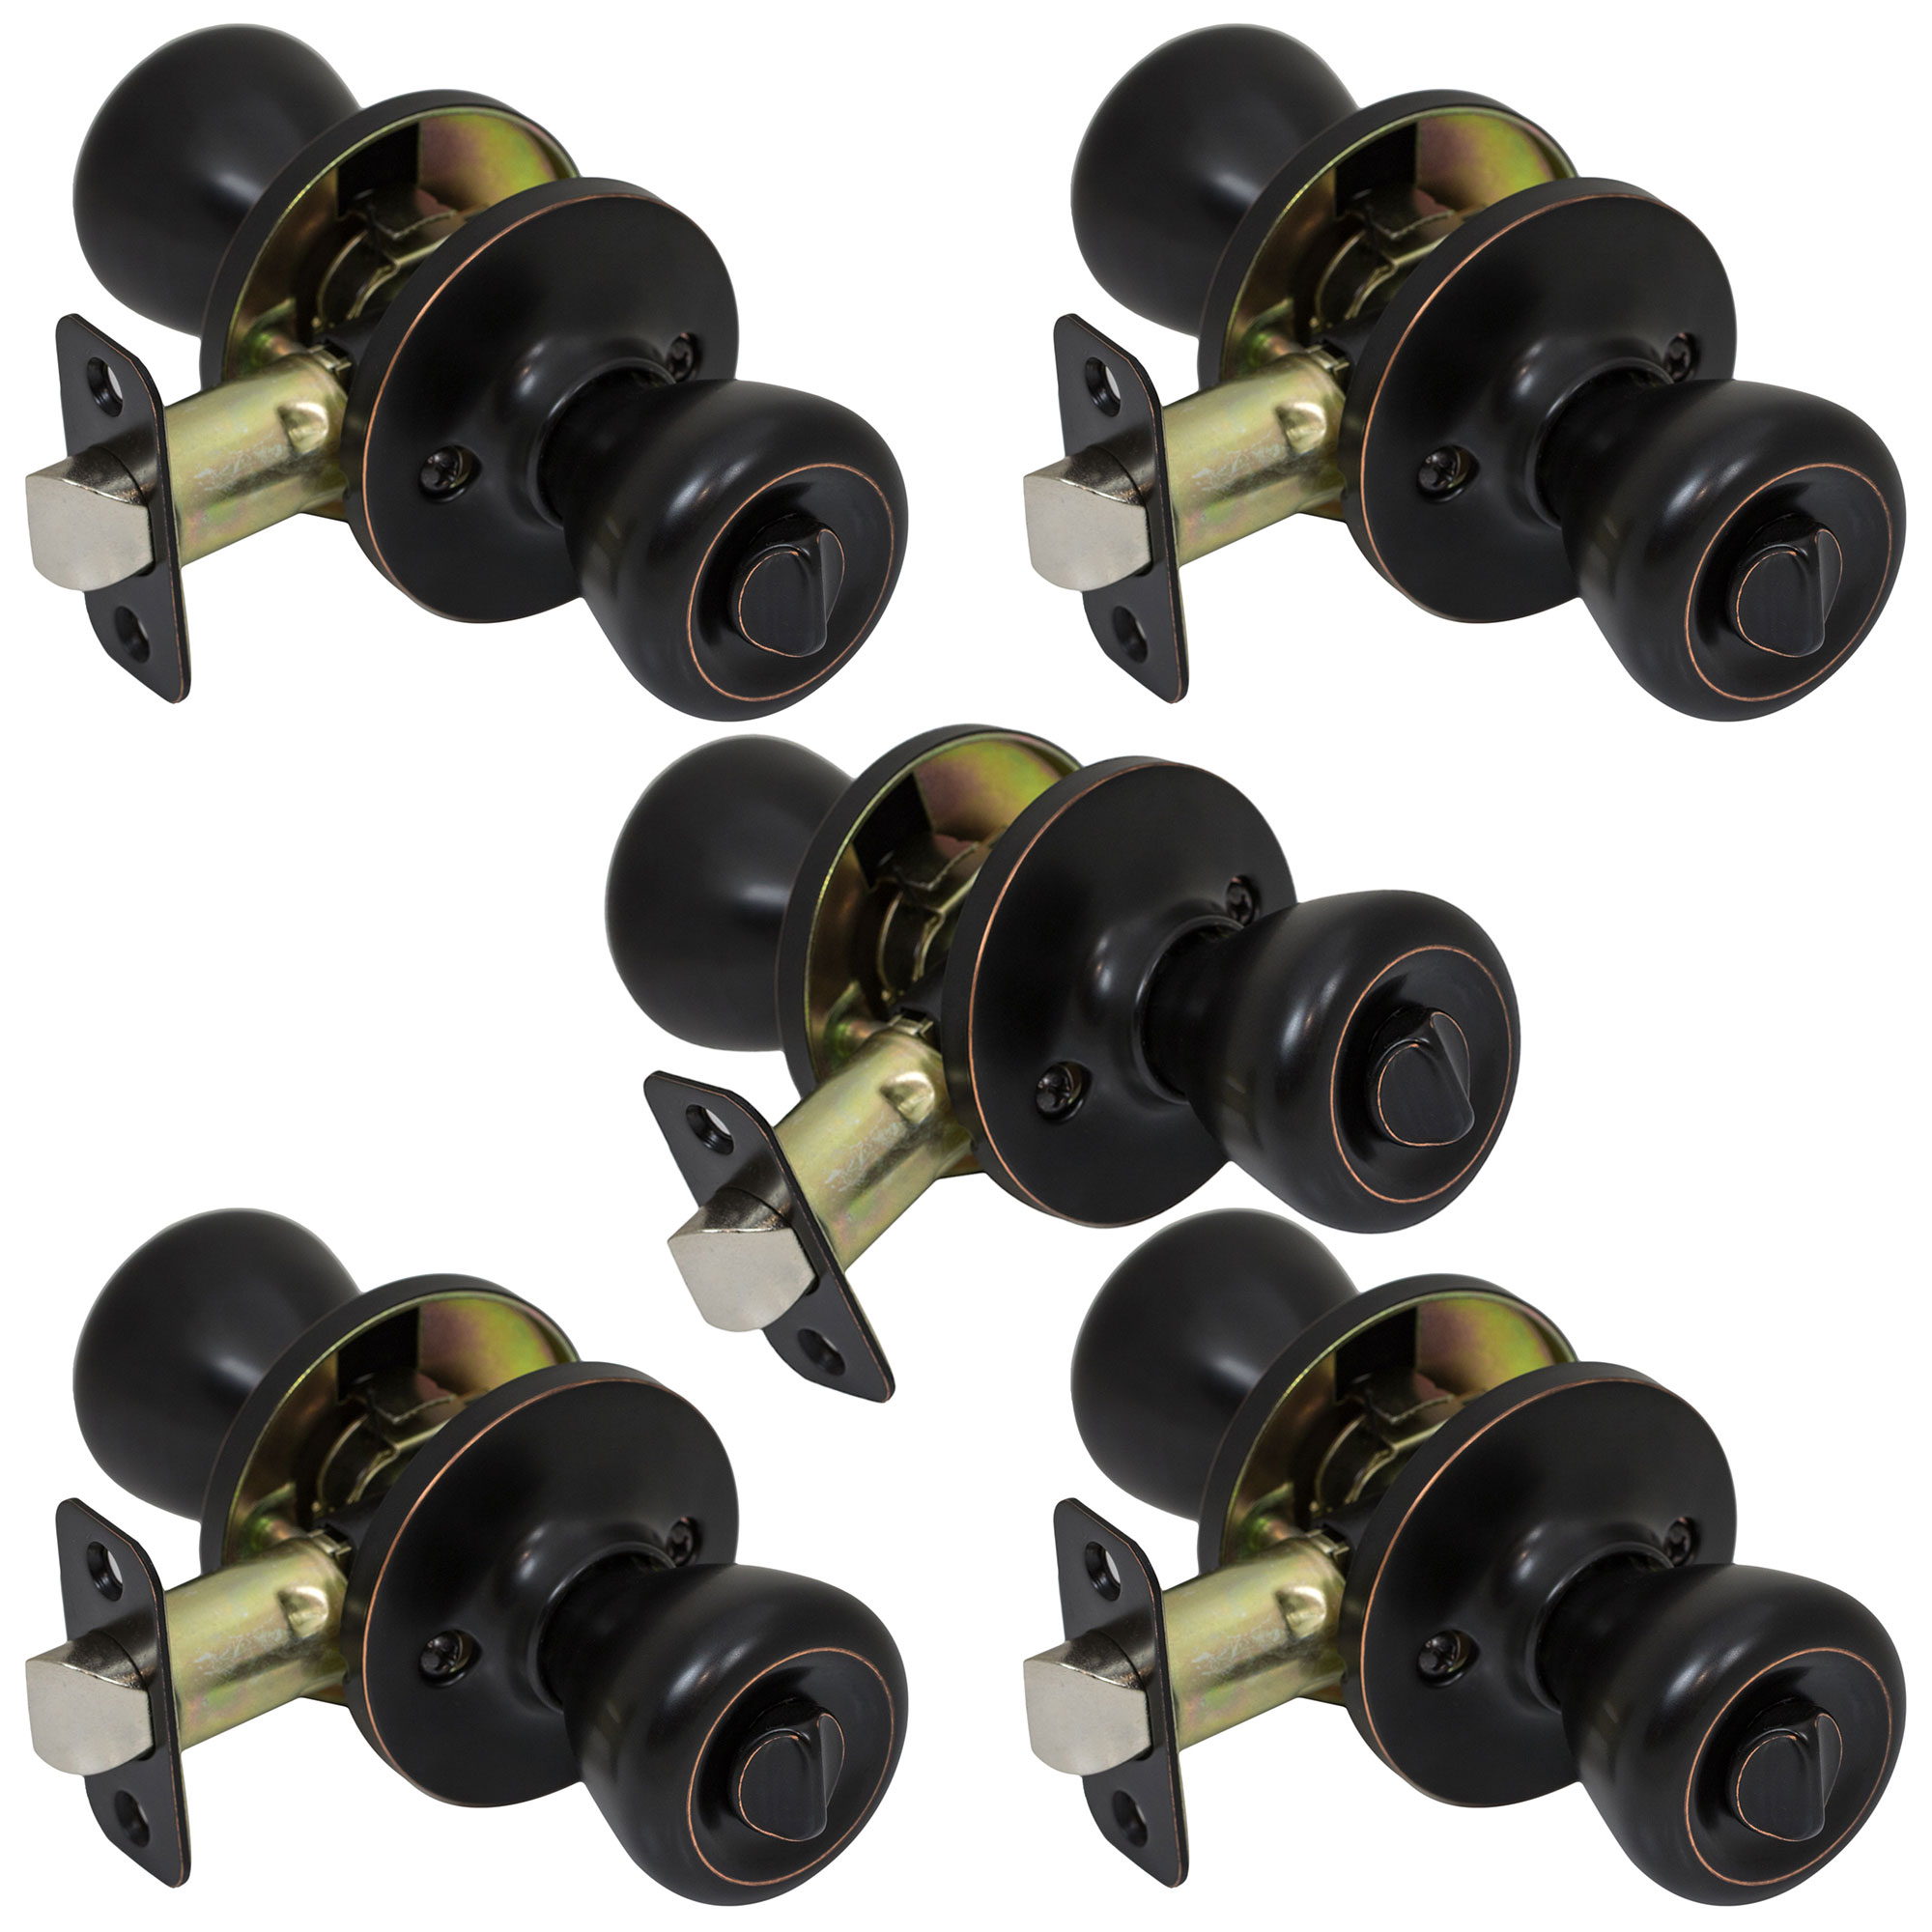 5 Pack of Pro-Grade Classic Privacy Bed Bathroom Door Knobs Handles, Oil Rubbed Bronze